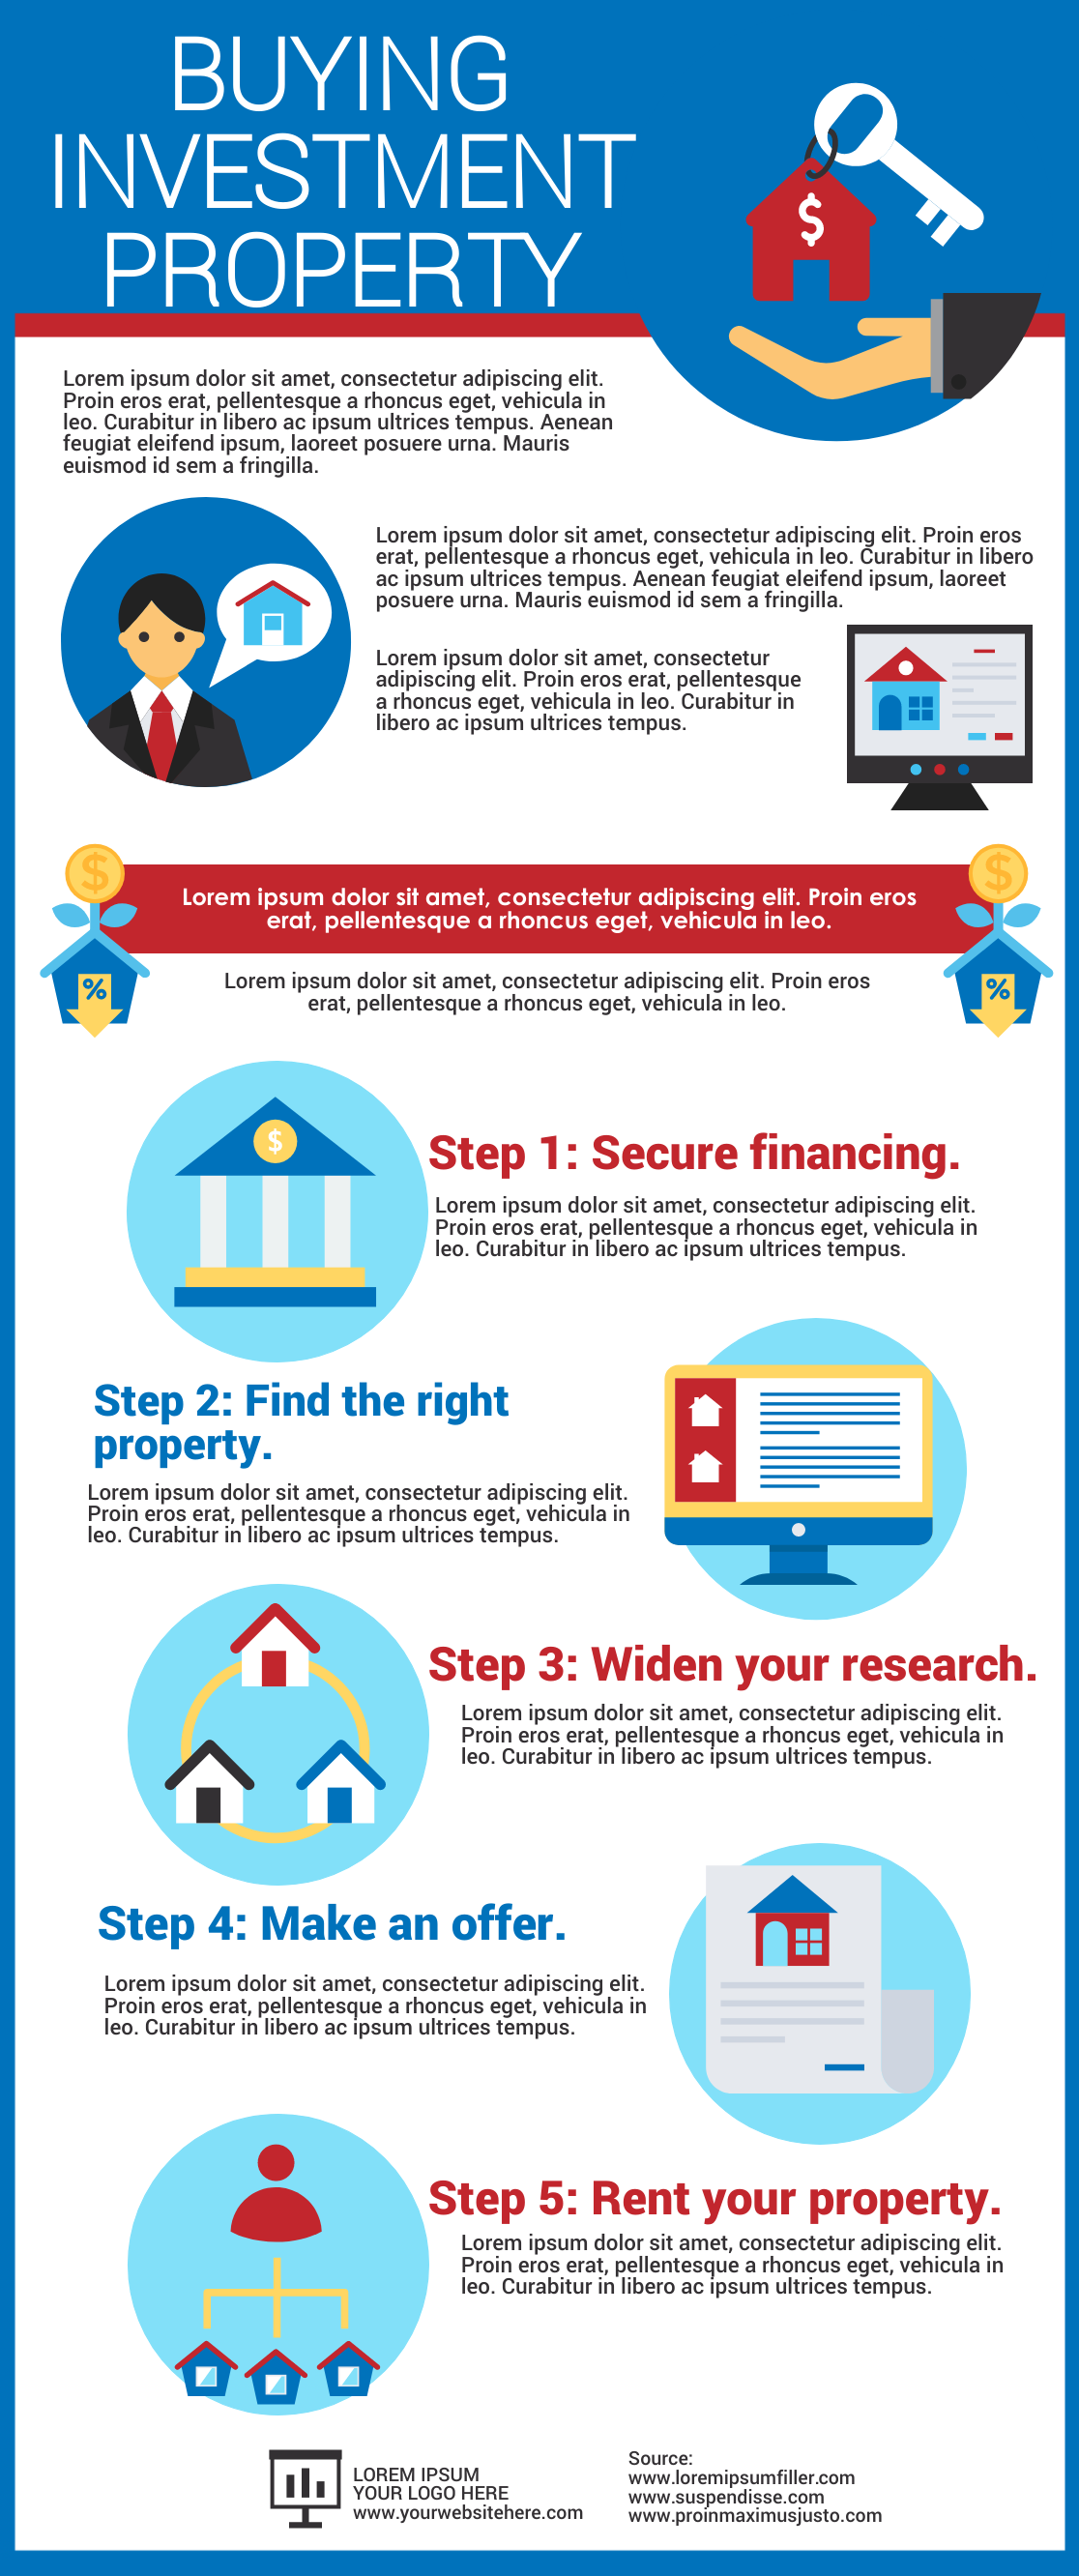 infographic about buying investment property